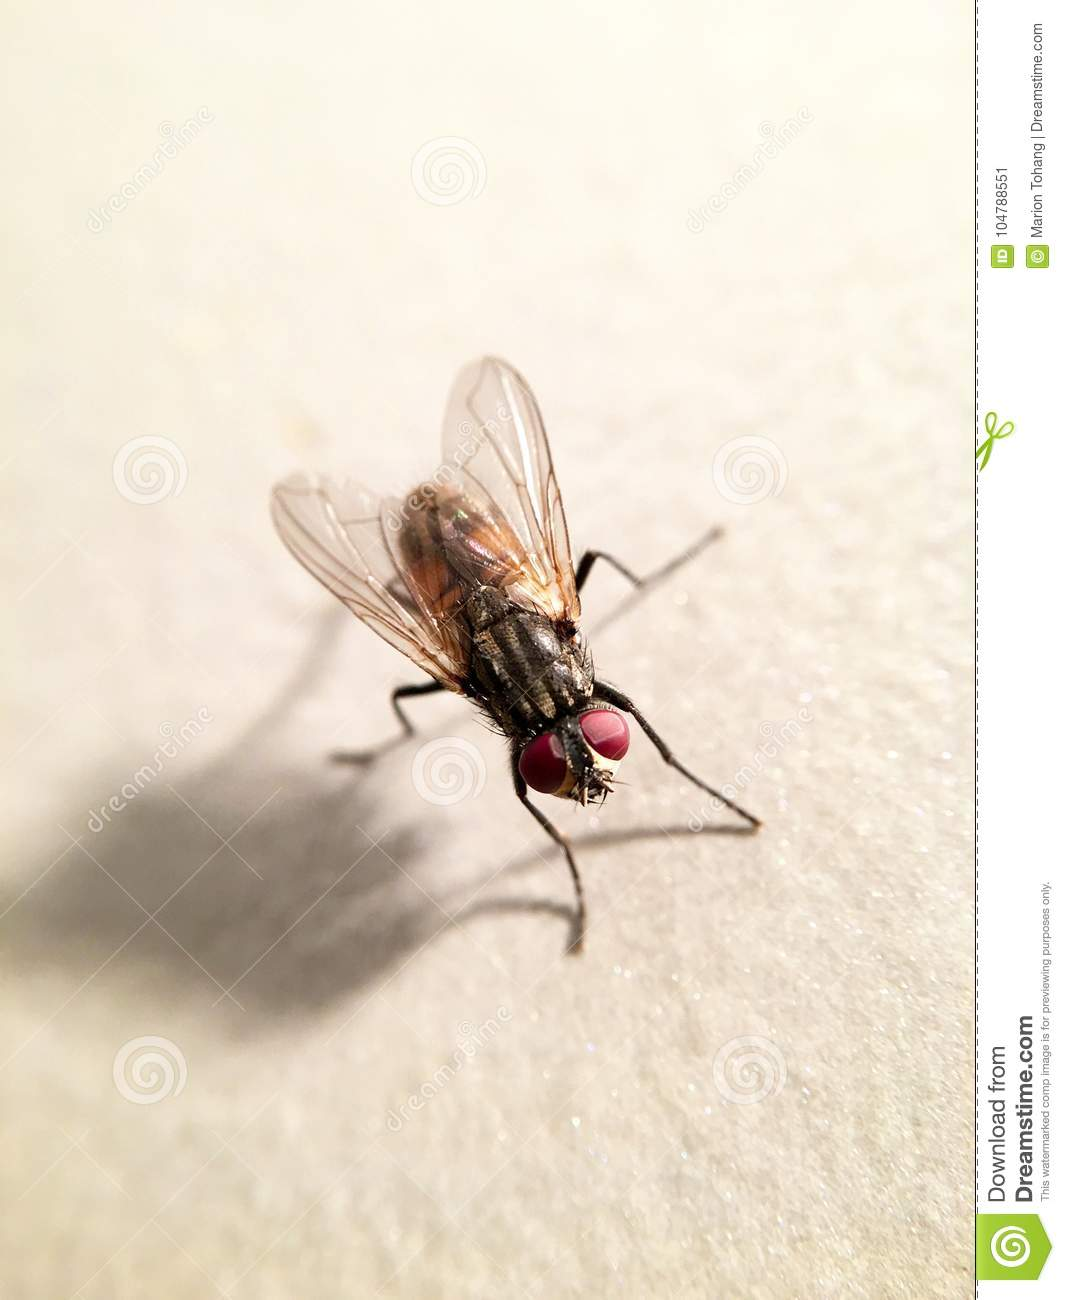 Beautiful House Fly Musca Domestica Stock Image - Image of diptera ...